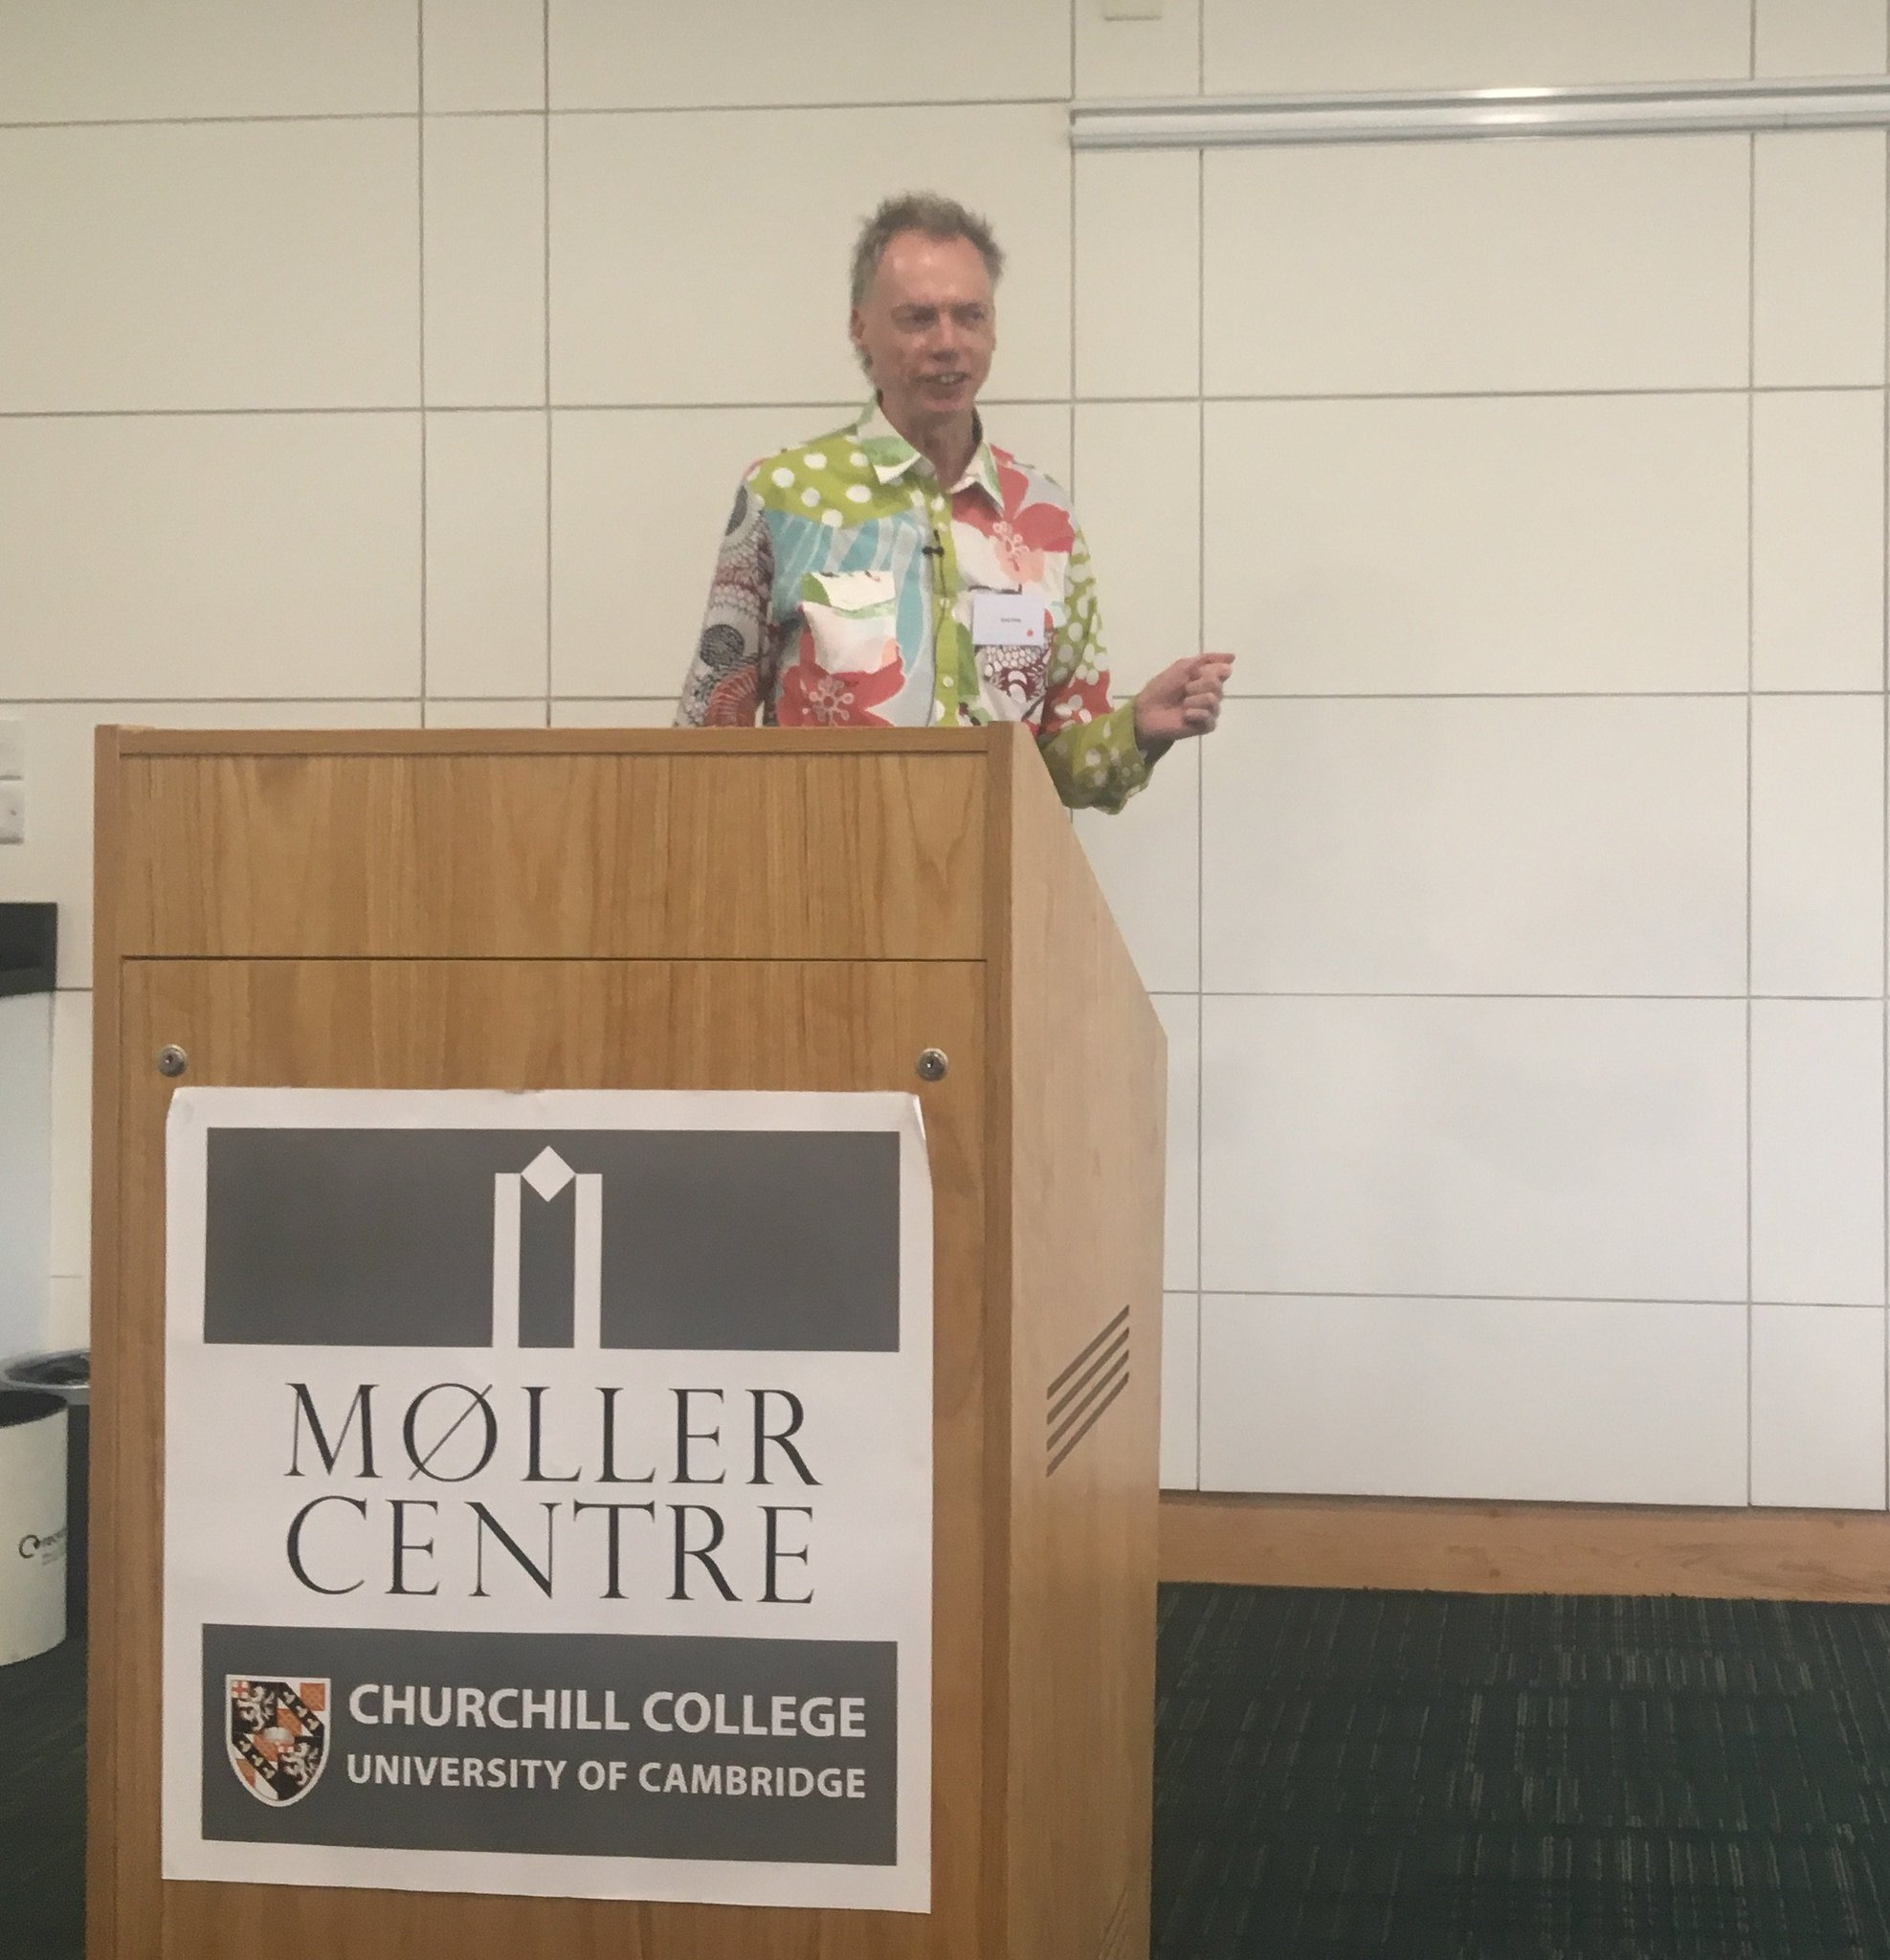 """Now we have Andy Clark @fluffycyborg talking to us about """"Prediction, Perception, and Imagination"""" #HumanMind2017 1/? https://t.co/qPm8fCg7P5"""